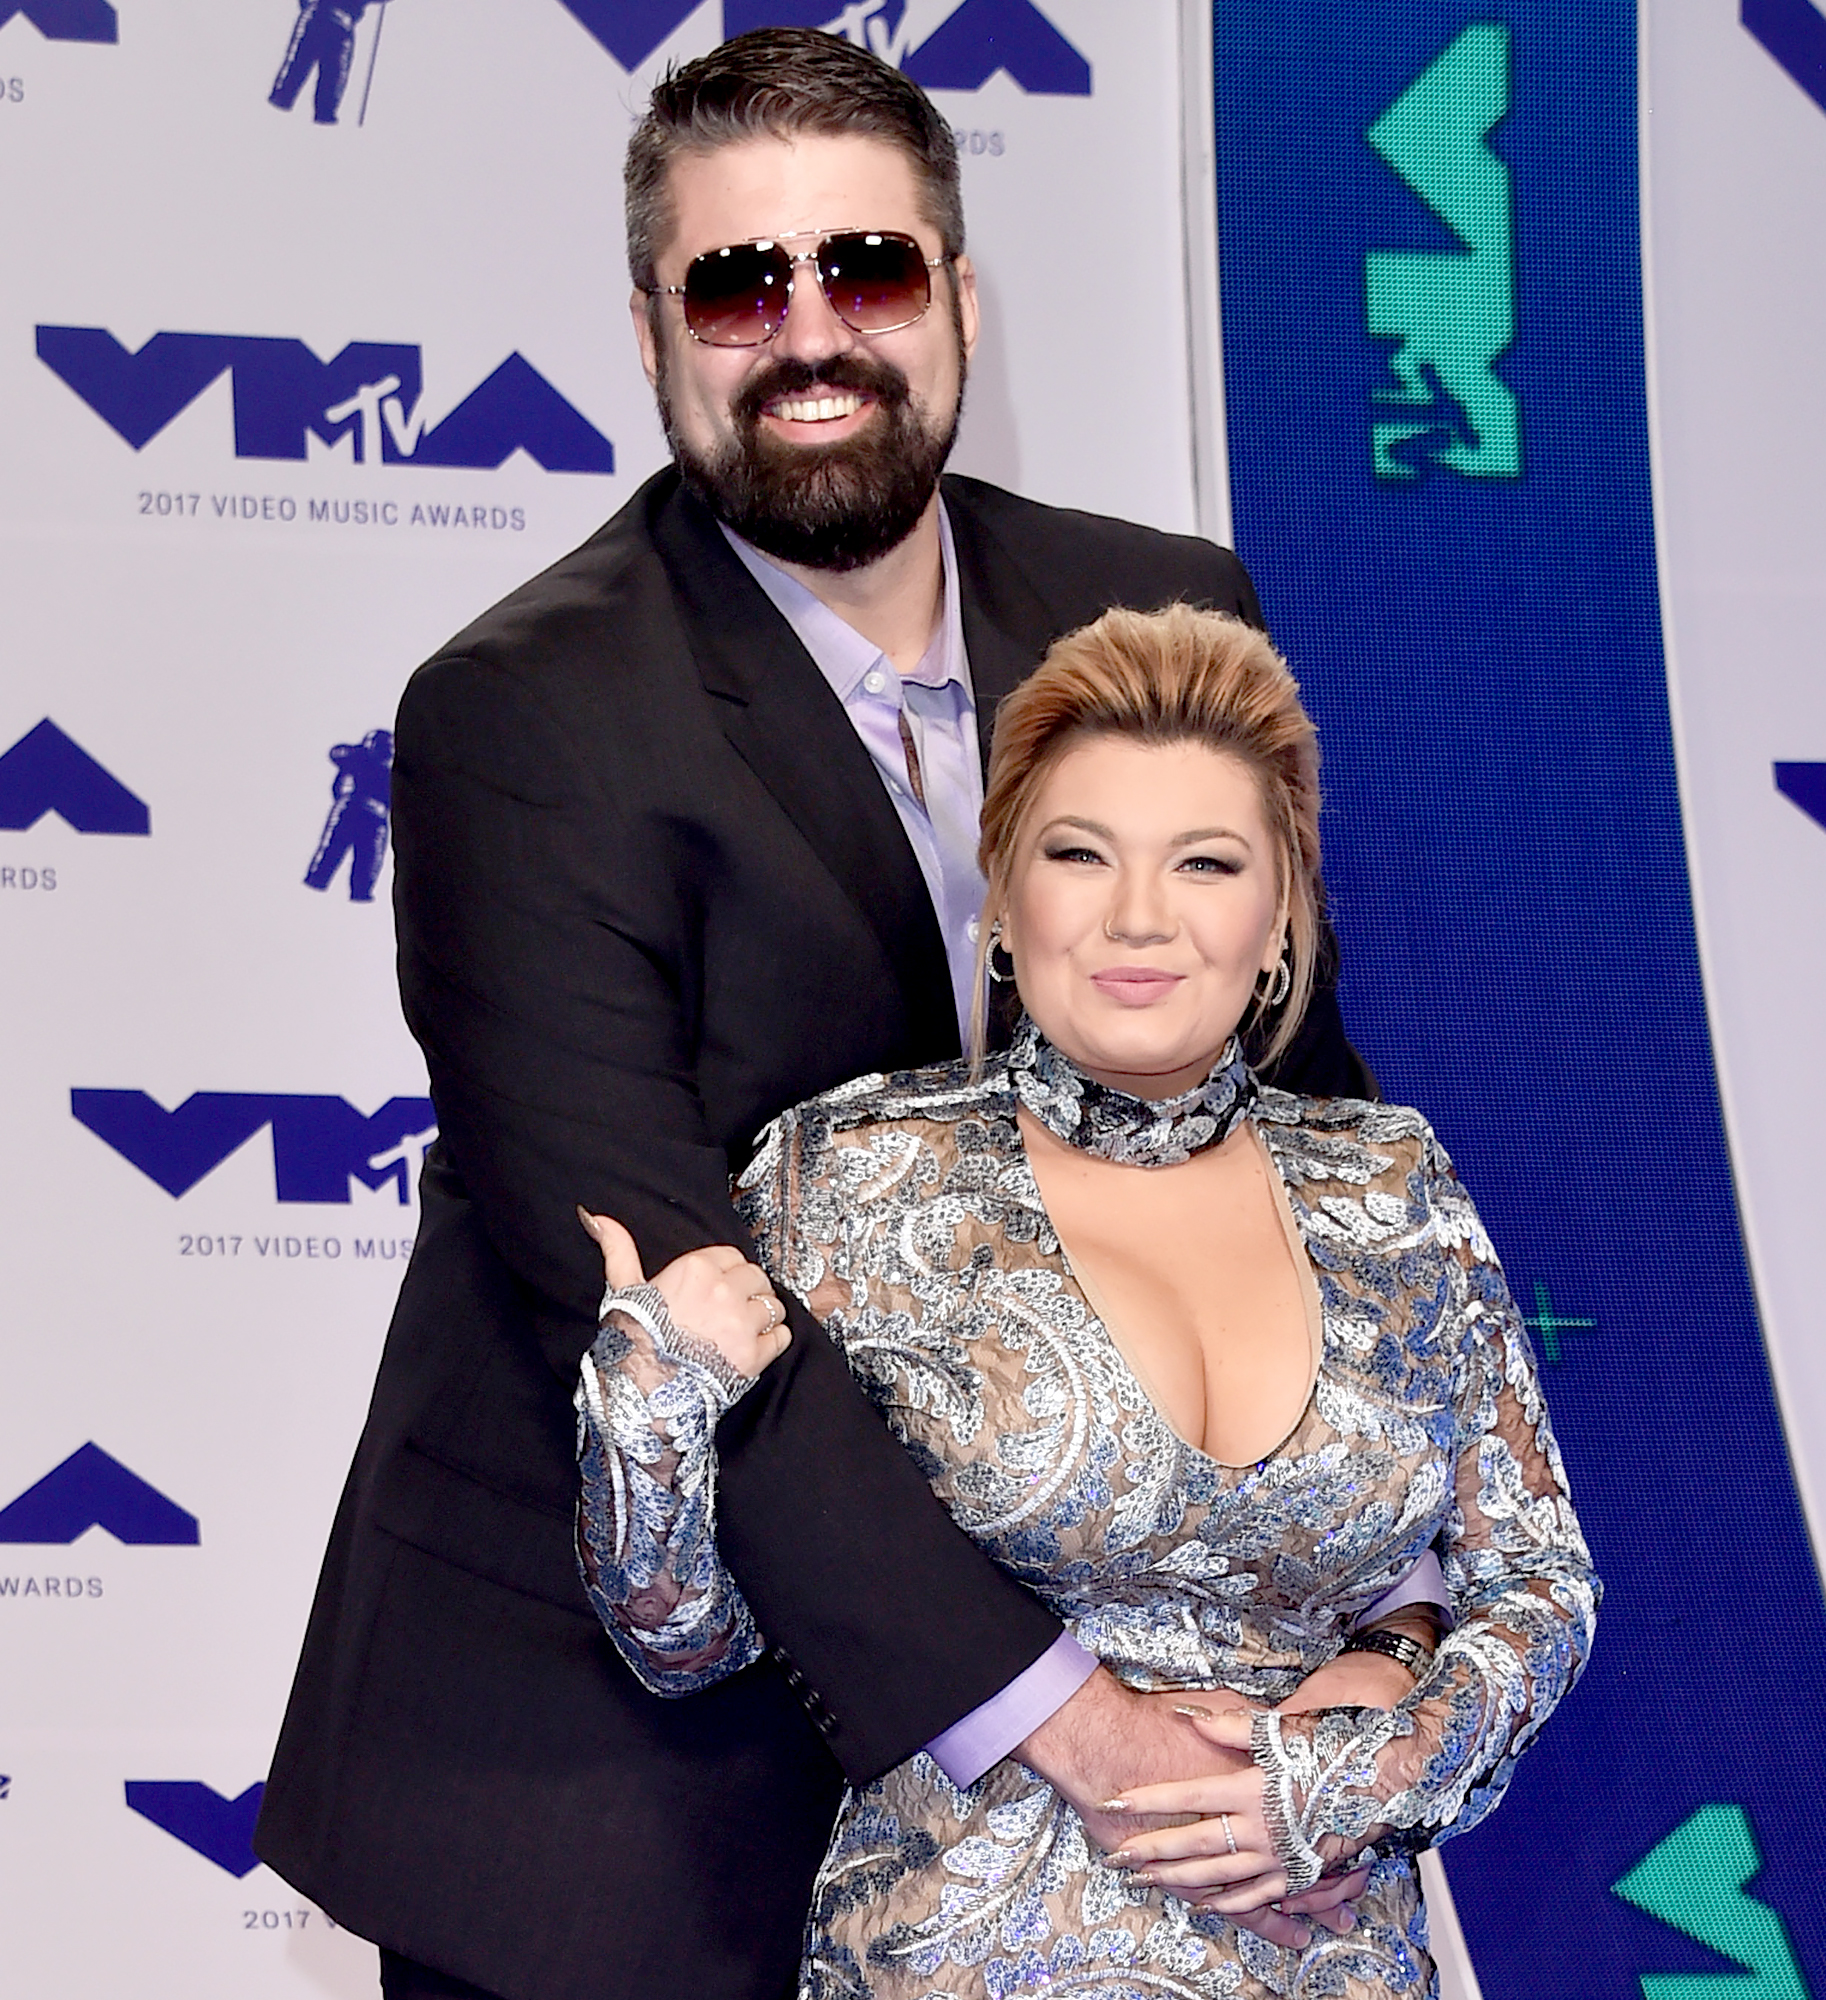 Andrew-Glennon-and-Amber-Portwood